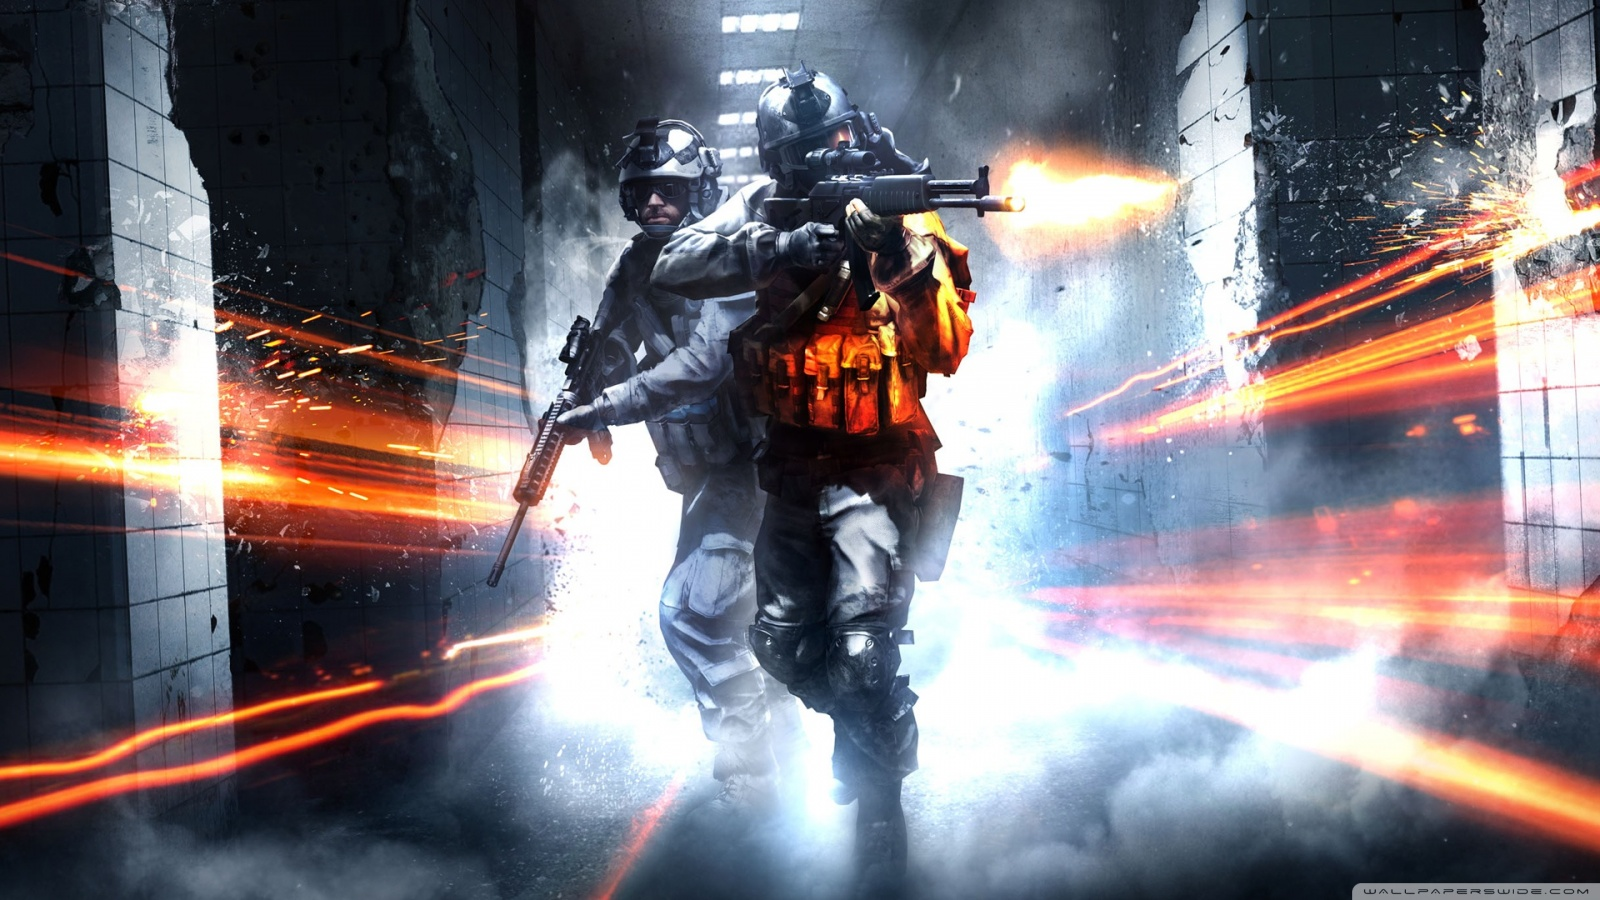 Freaking spot battlefield full hd 1080p wallpapers - Battlefield screensaver ...